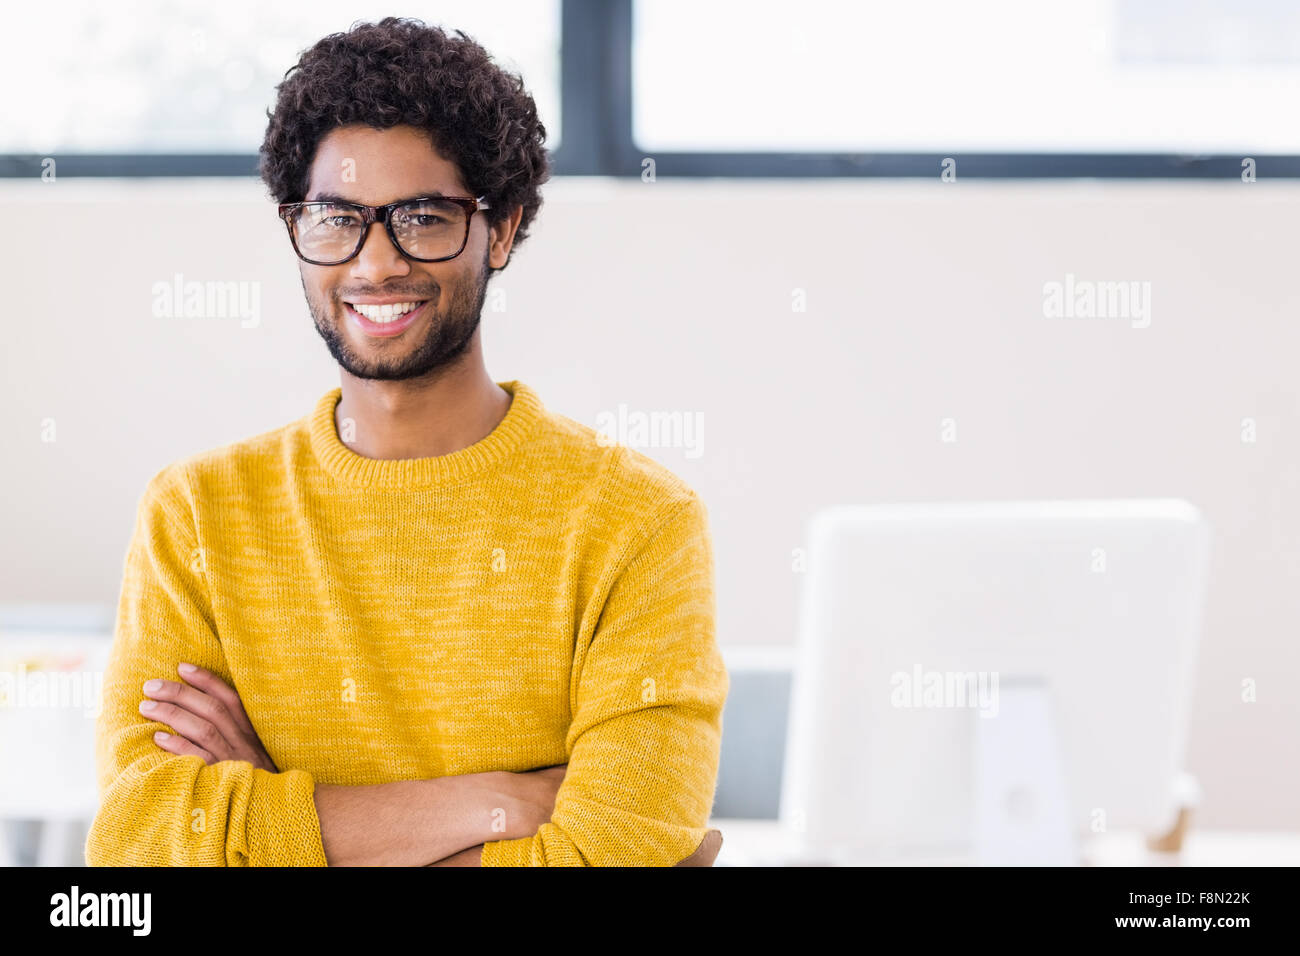 Portrait of attractive man smiling at camera - Stock Image